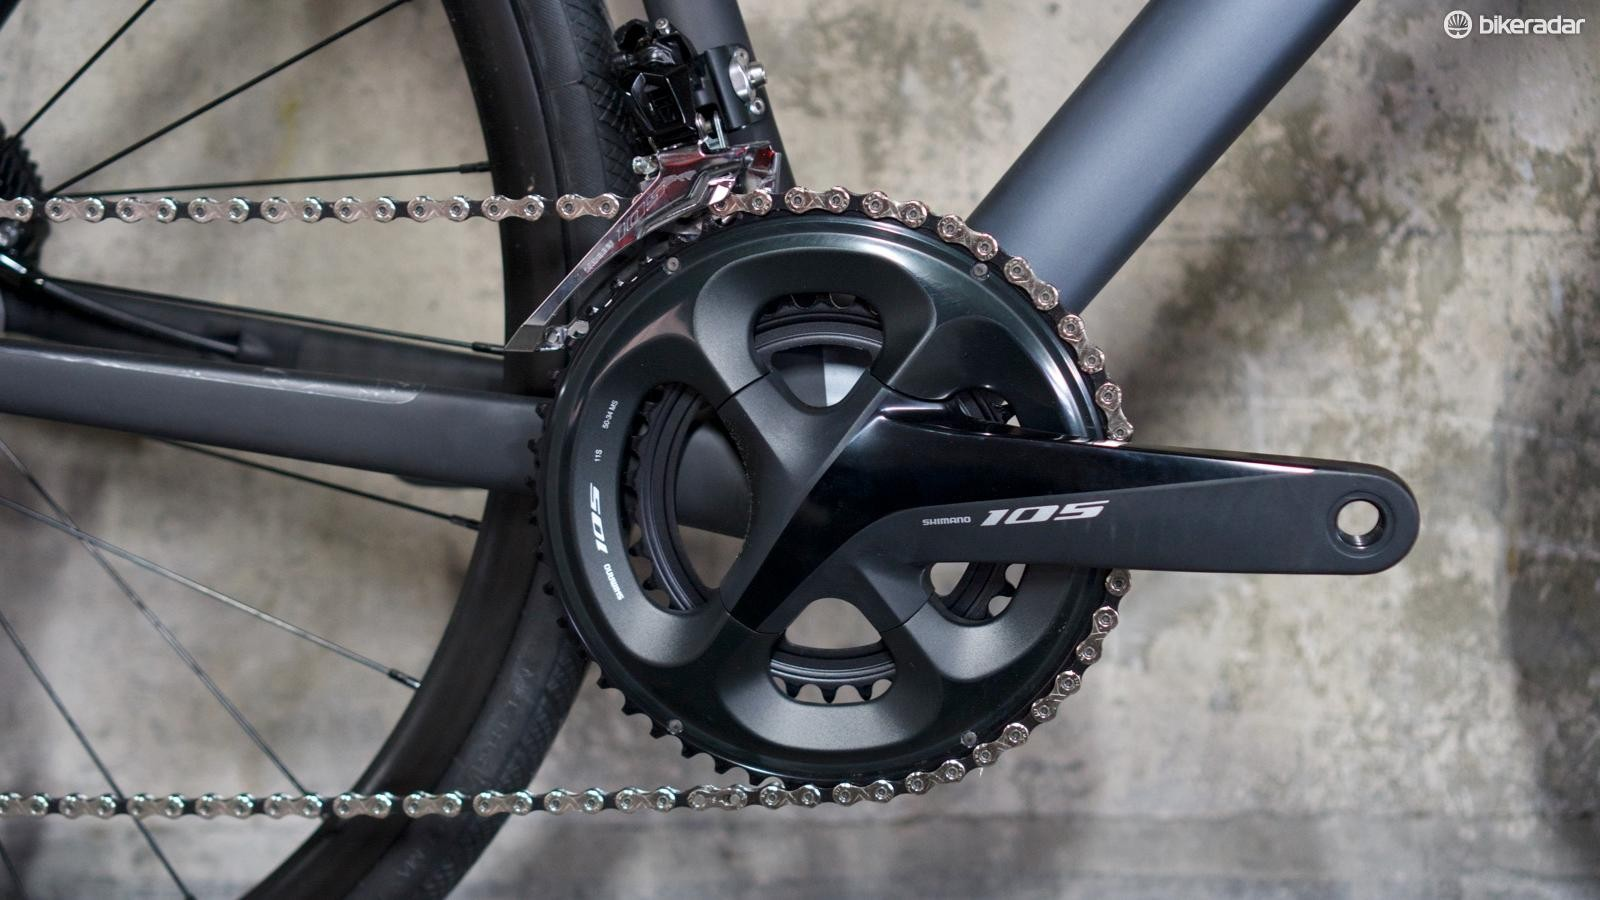 Our Bike of the Year Zenium CRW test bike comes with Shimano 105 drivetrain